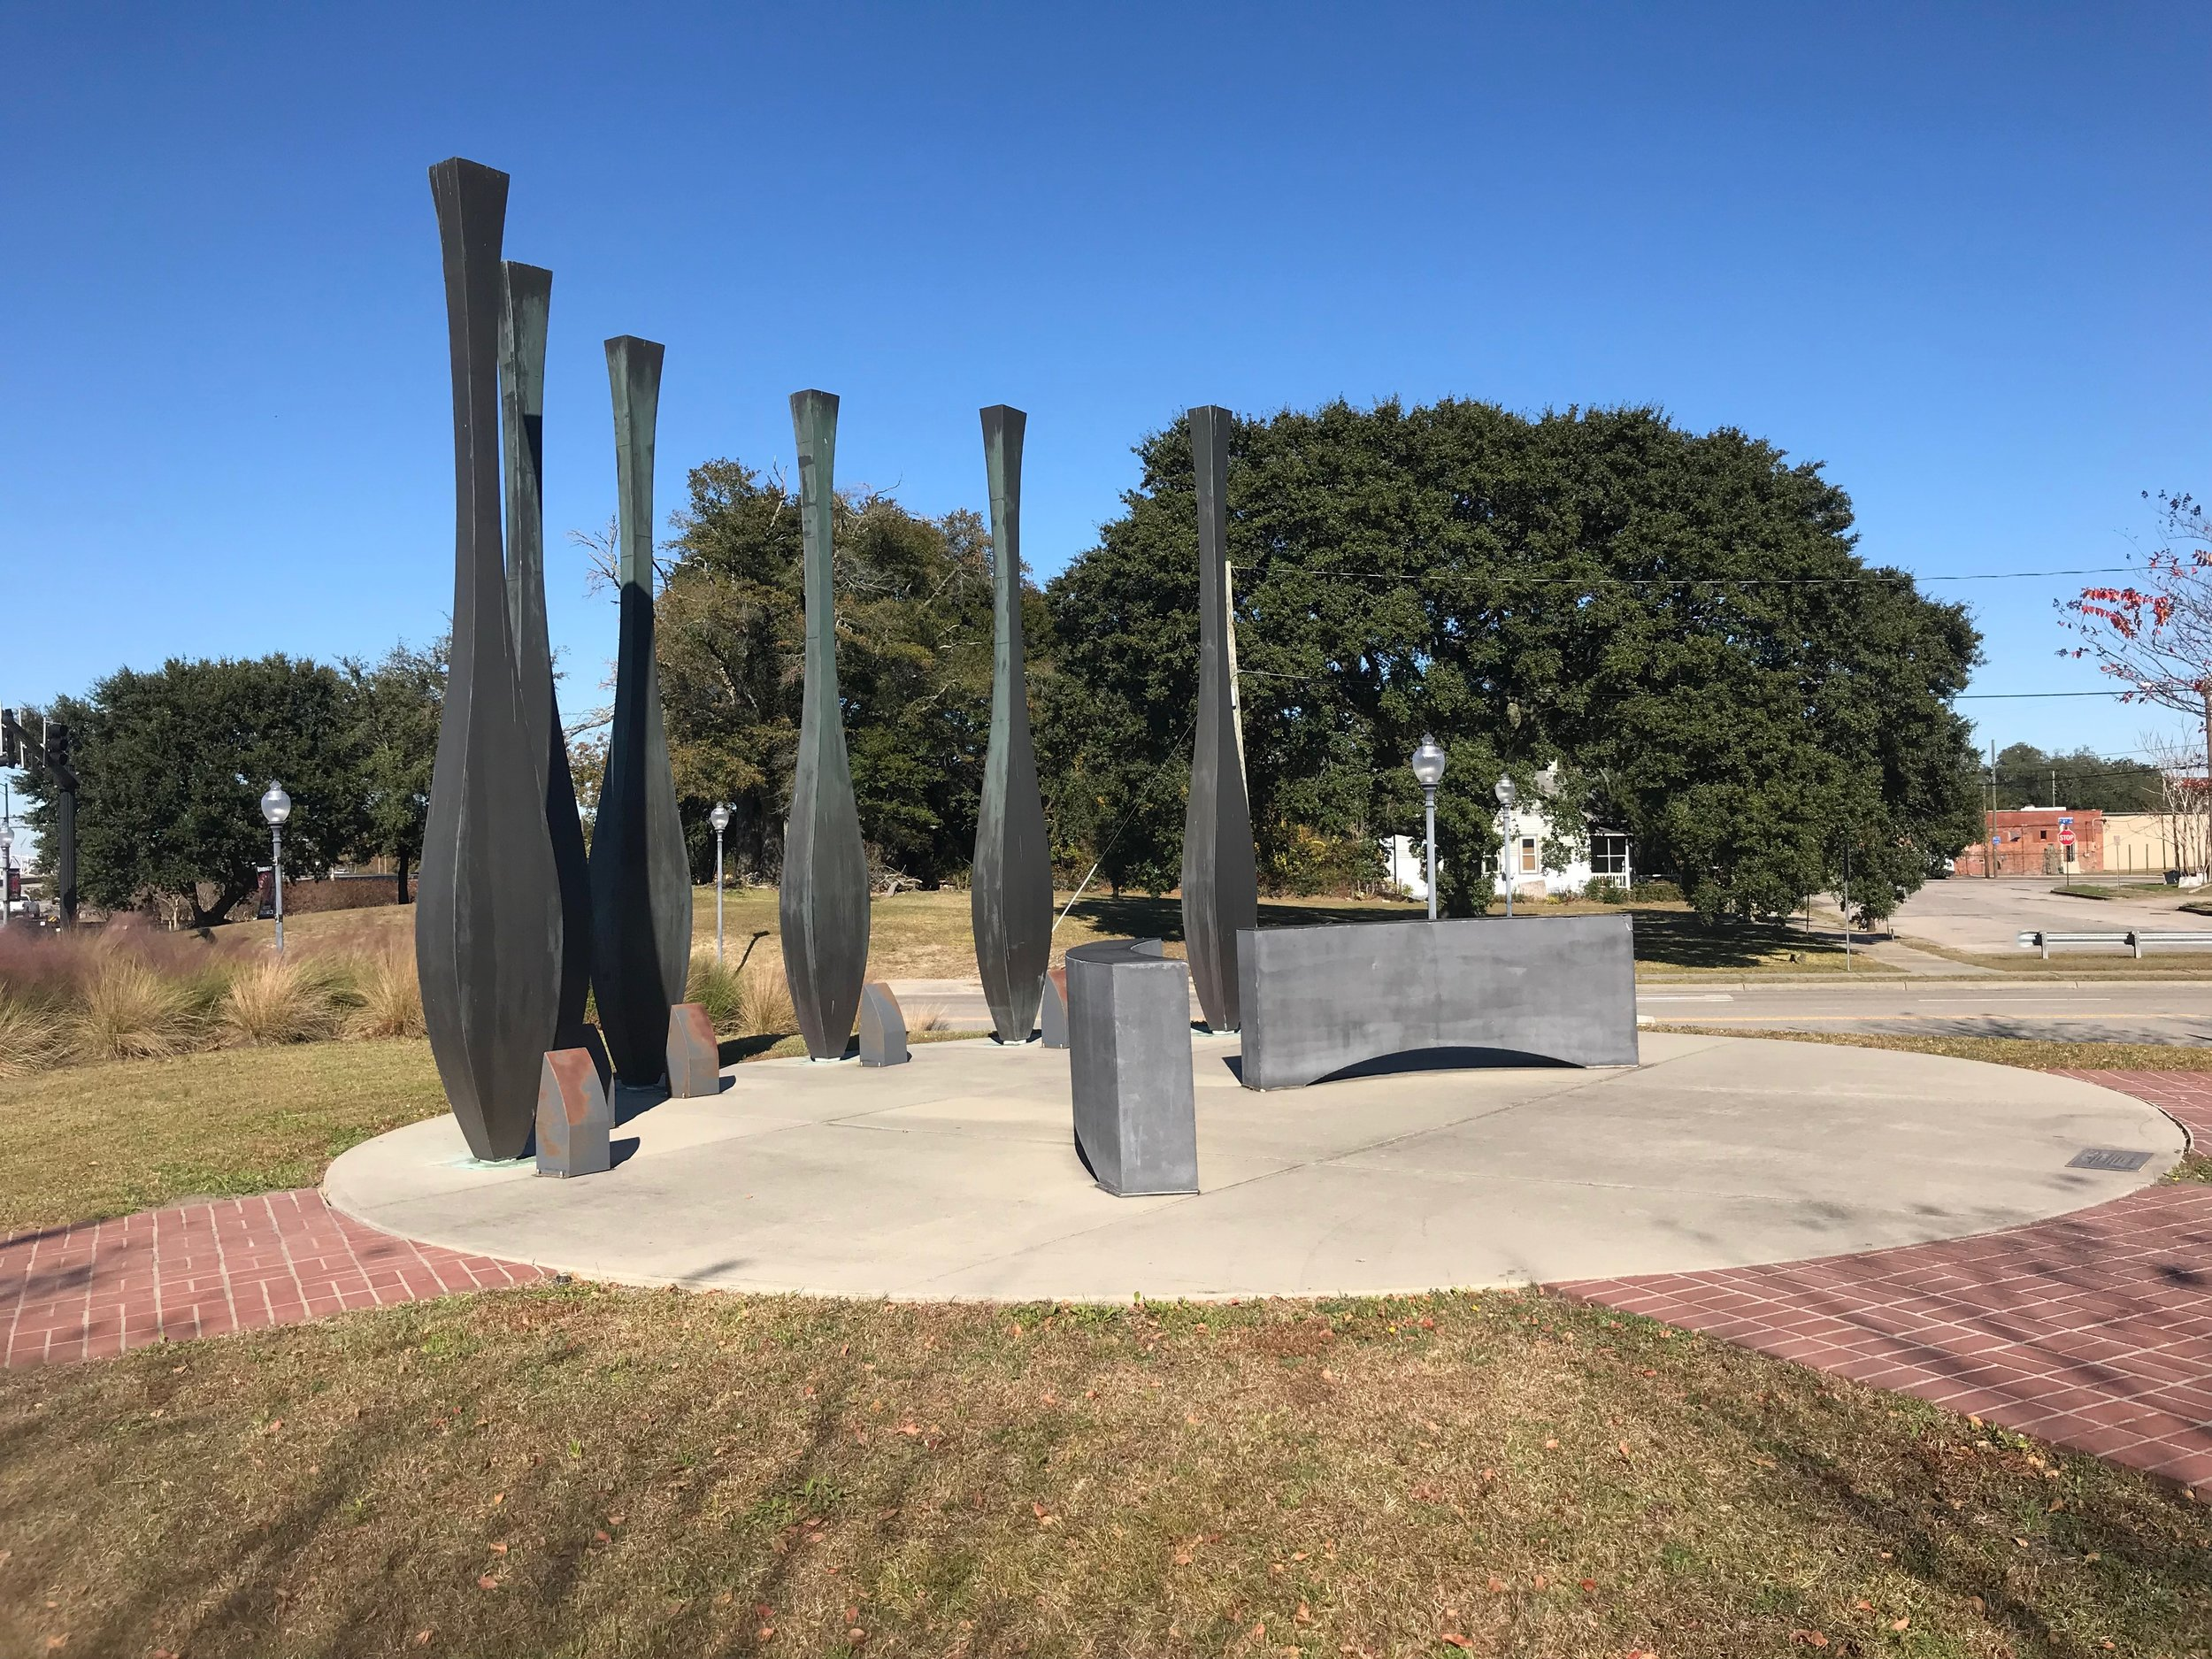 The memorial to the victims of the 1898 Wilmington massacre, dedicated in 2013.